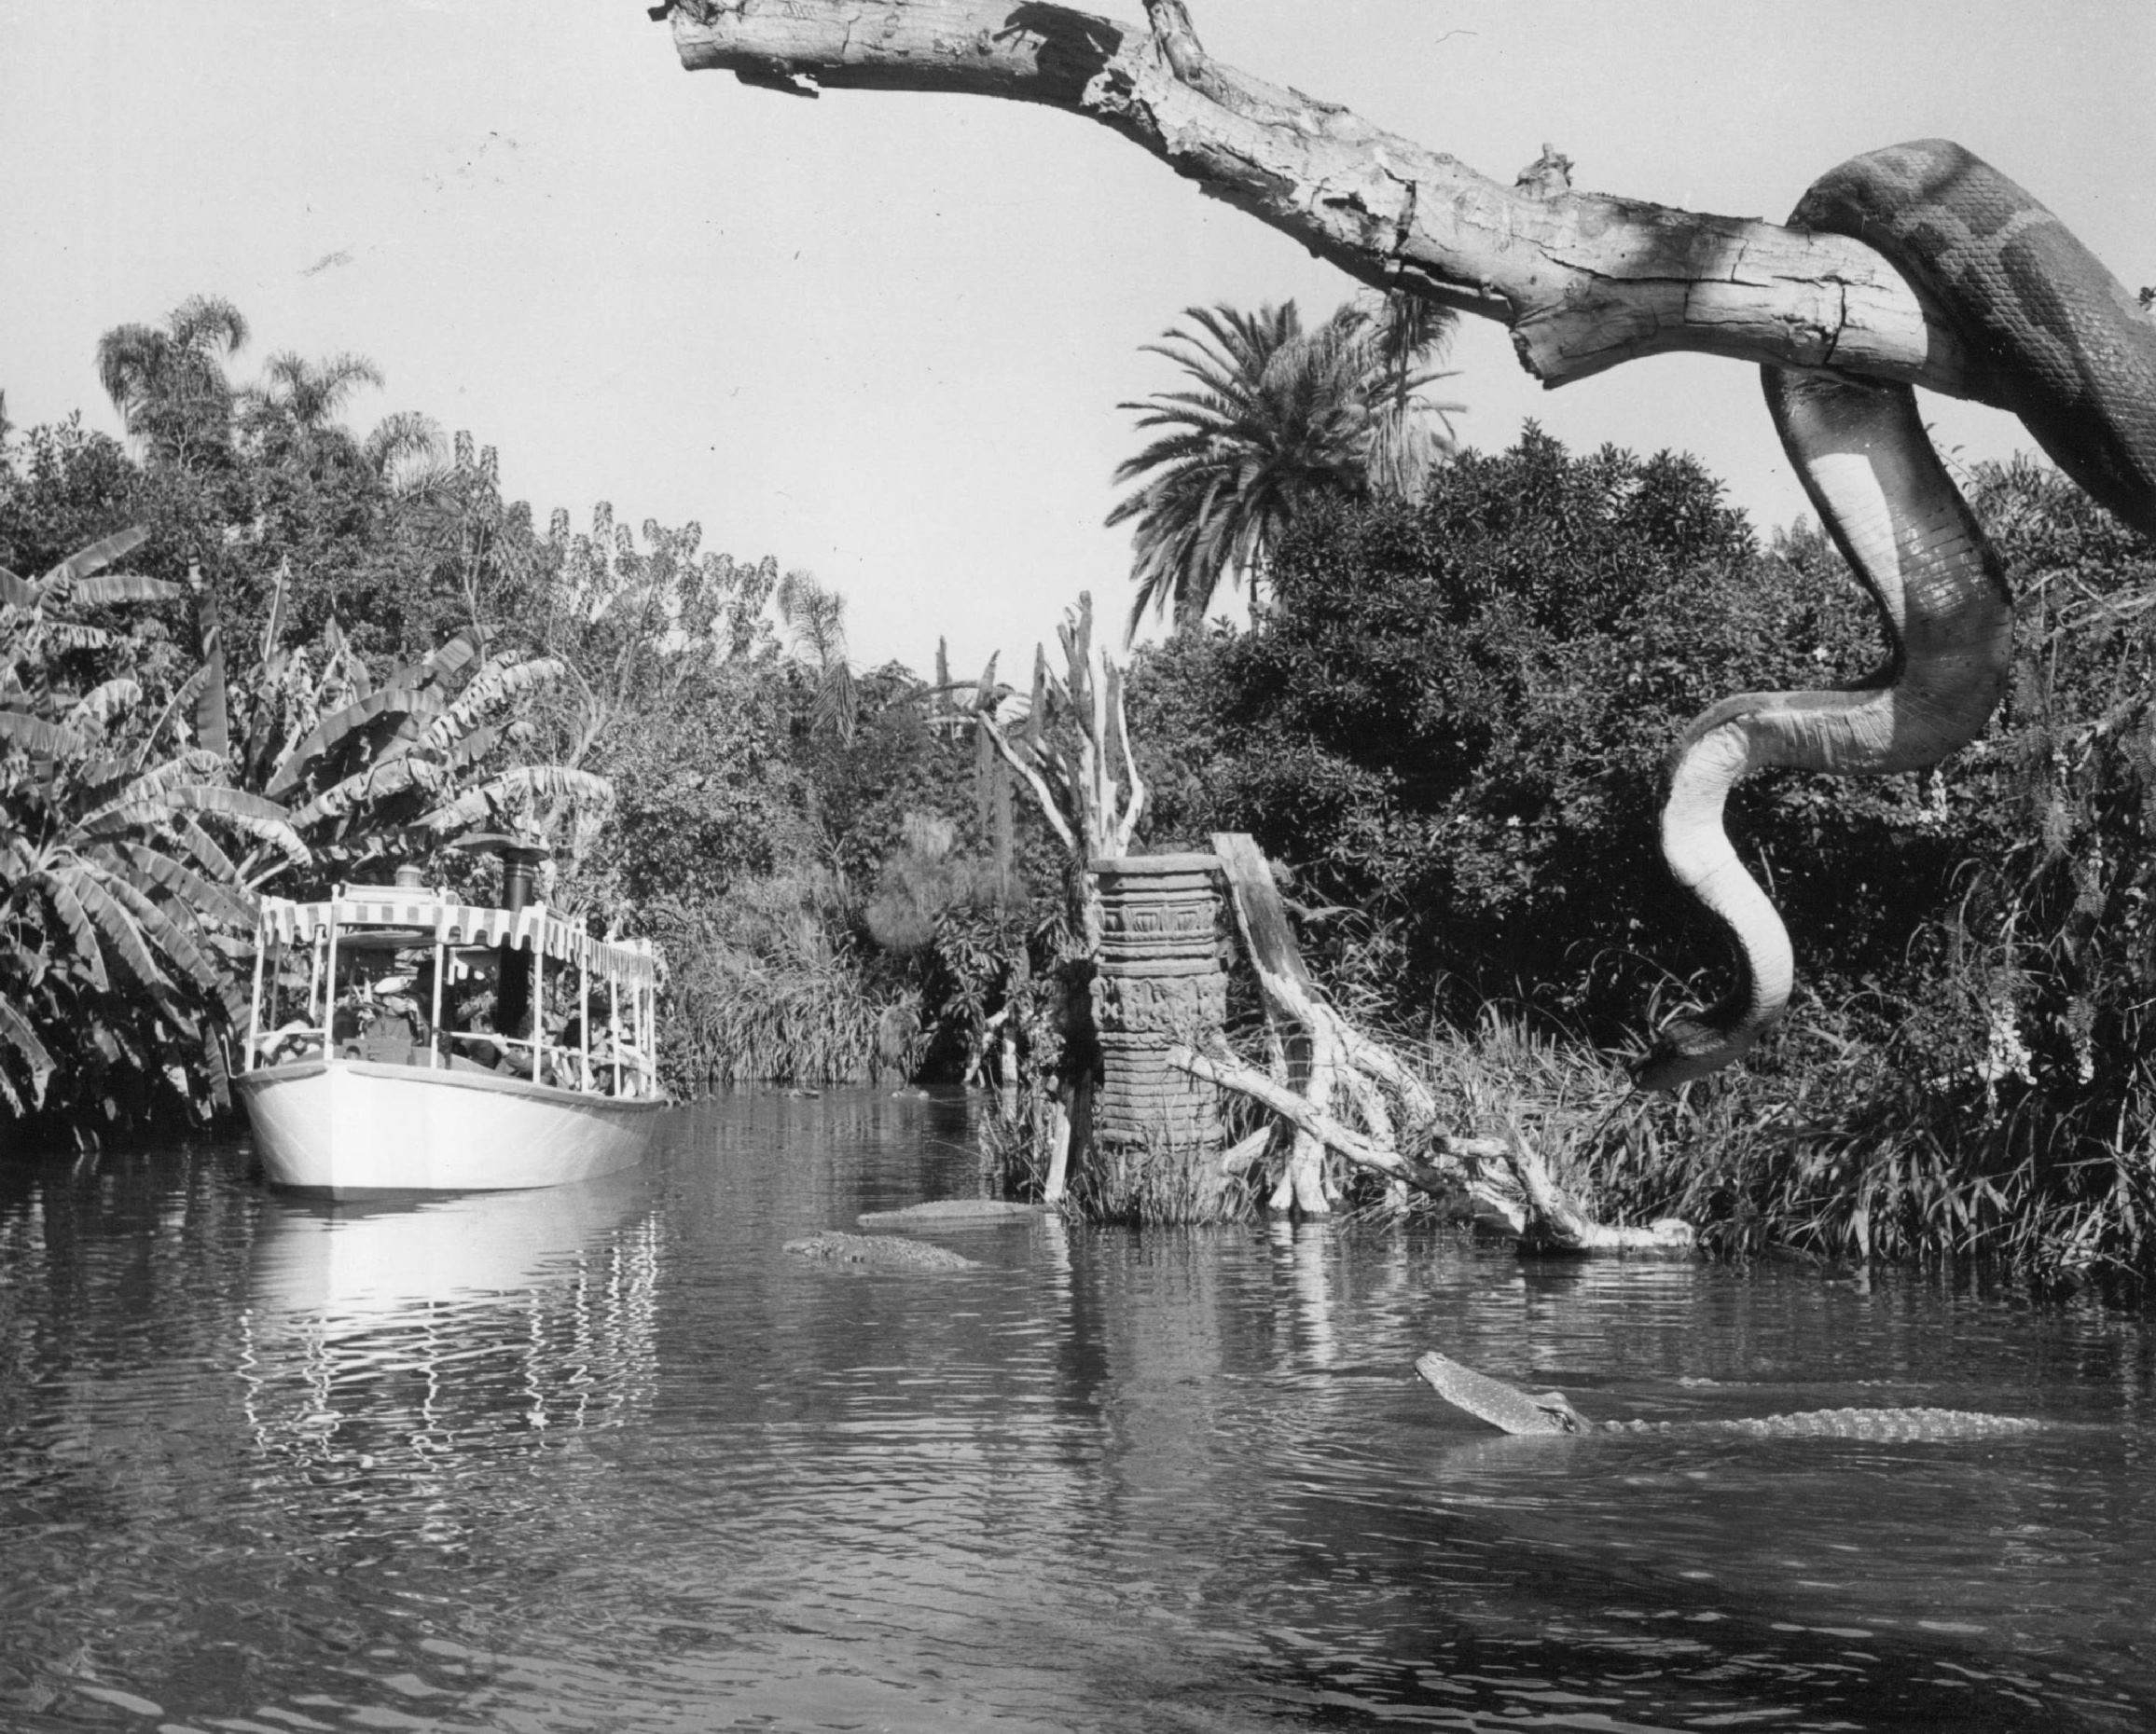 Slide 21 of 33: APR 24 1966; Denver post Carriers will travel down this river in June; The Jungle stream in Disneyland has warriors, snakes, alligators and elephants.  (Photo By The Denver Post via Getty Images)